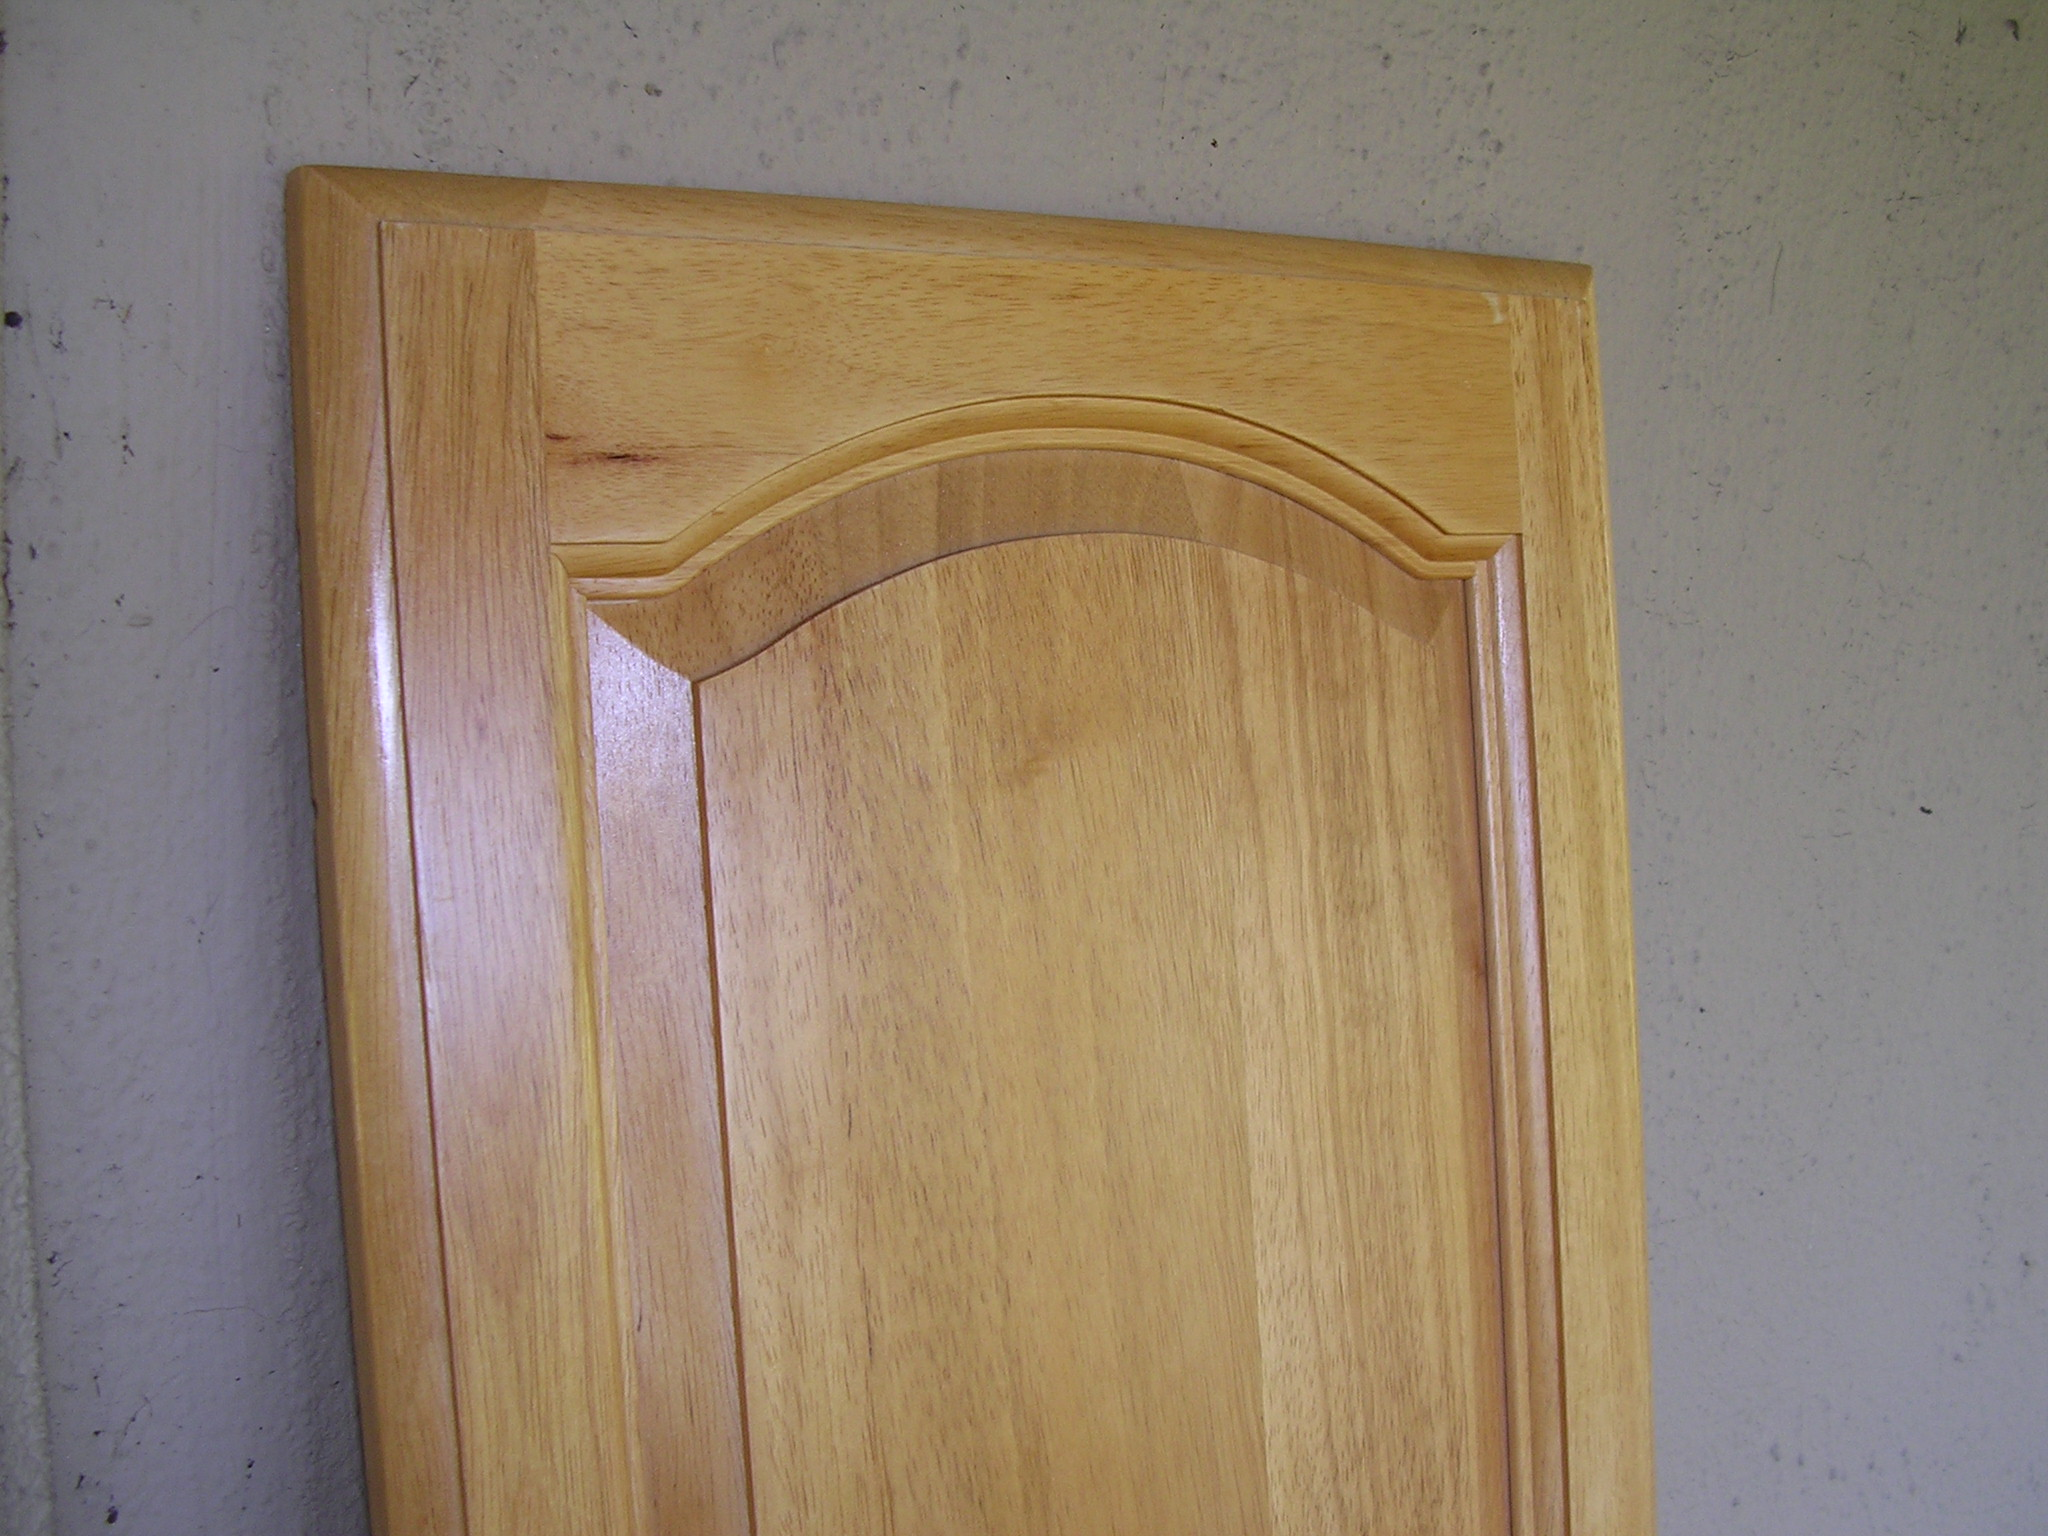 Cabinet Broker 5B China Oak Cathedral Arched Doors Kitchen Cabinets